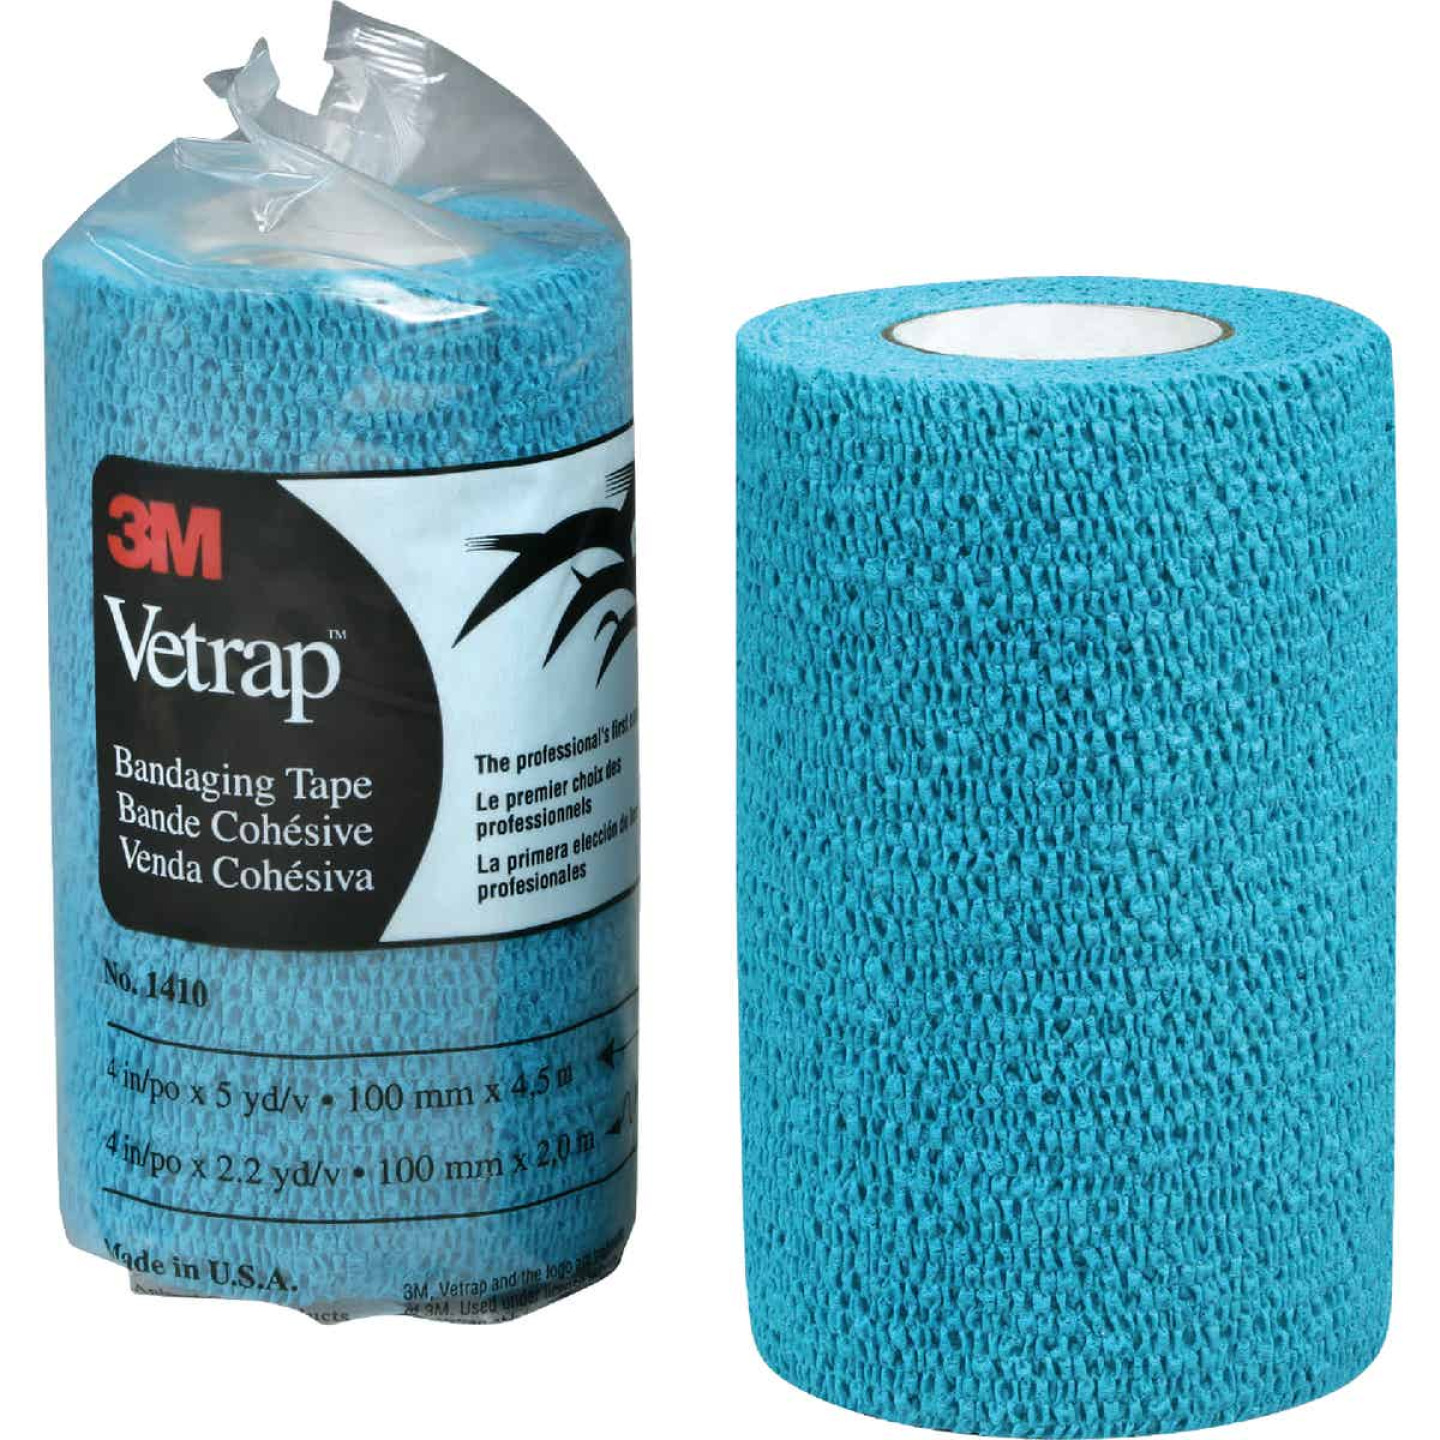 3M Vetrap 4 In. x 5 Yd. Blue Bandaging Wrap Image 1